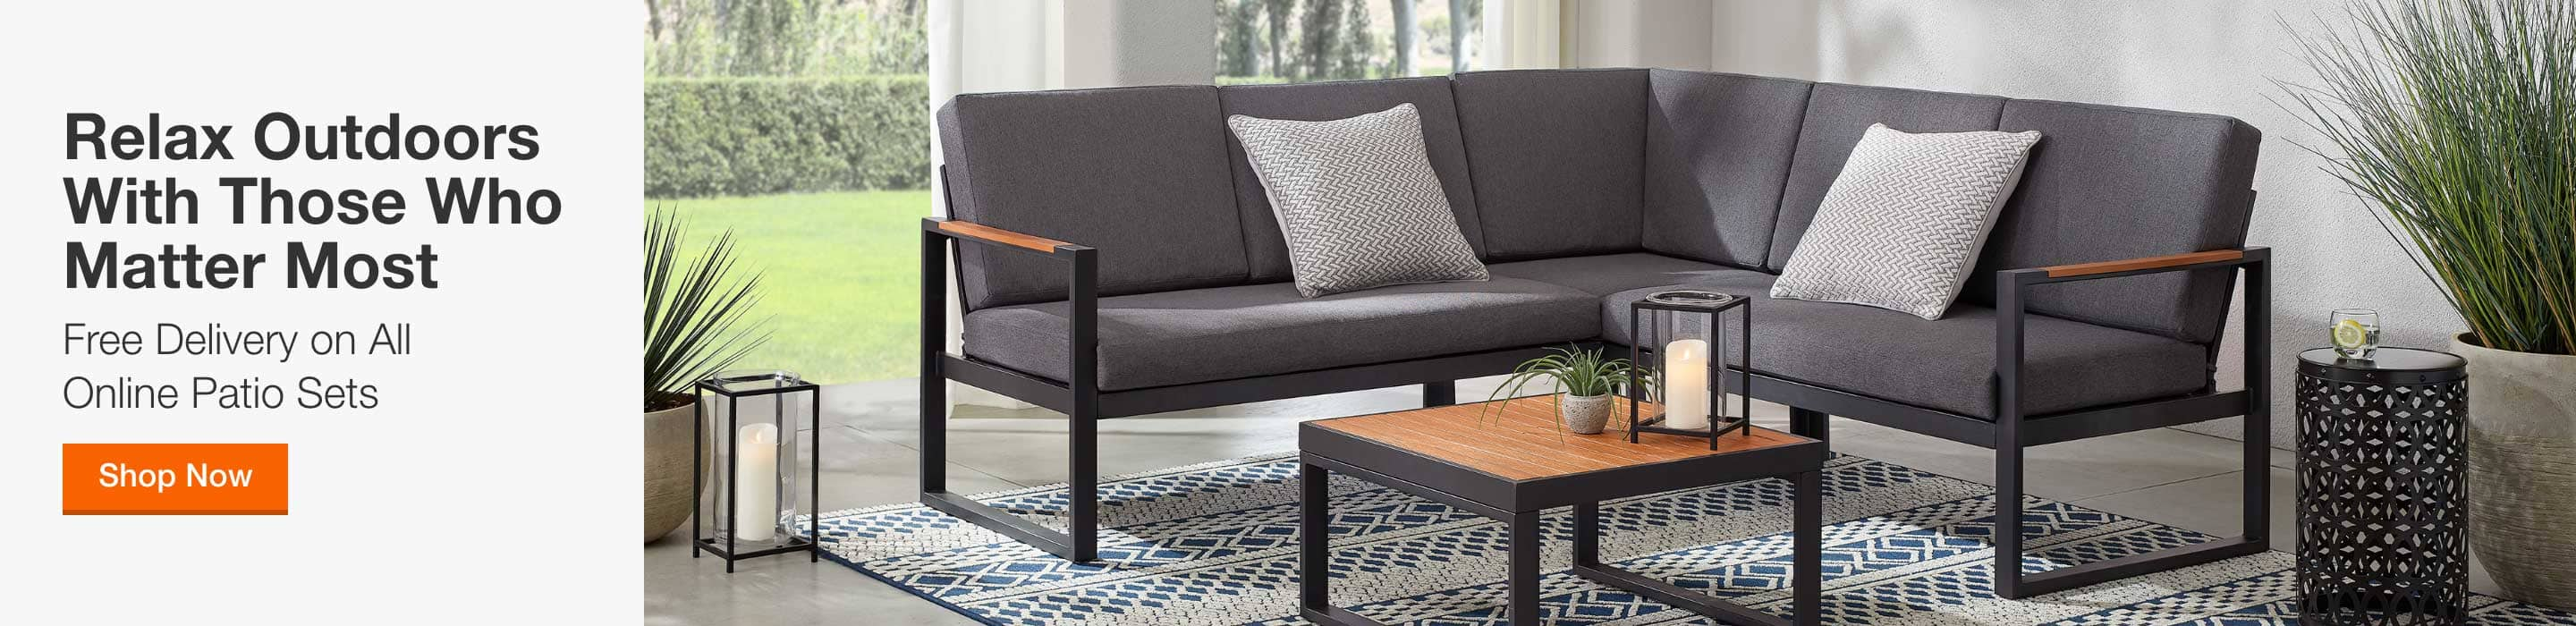 RELAX OUTDOORS WITH THOSE WHO MATTER MOST - Free Delivery on All Online Patio Sets. Shop Now